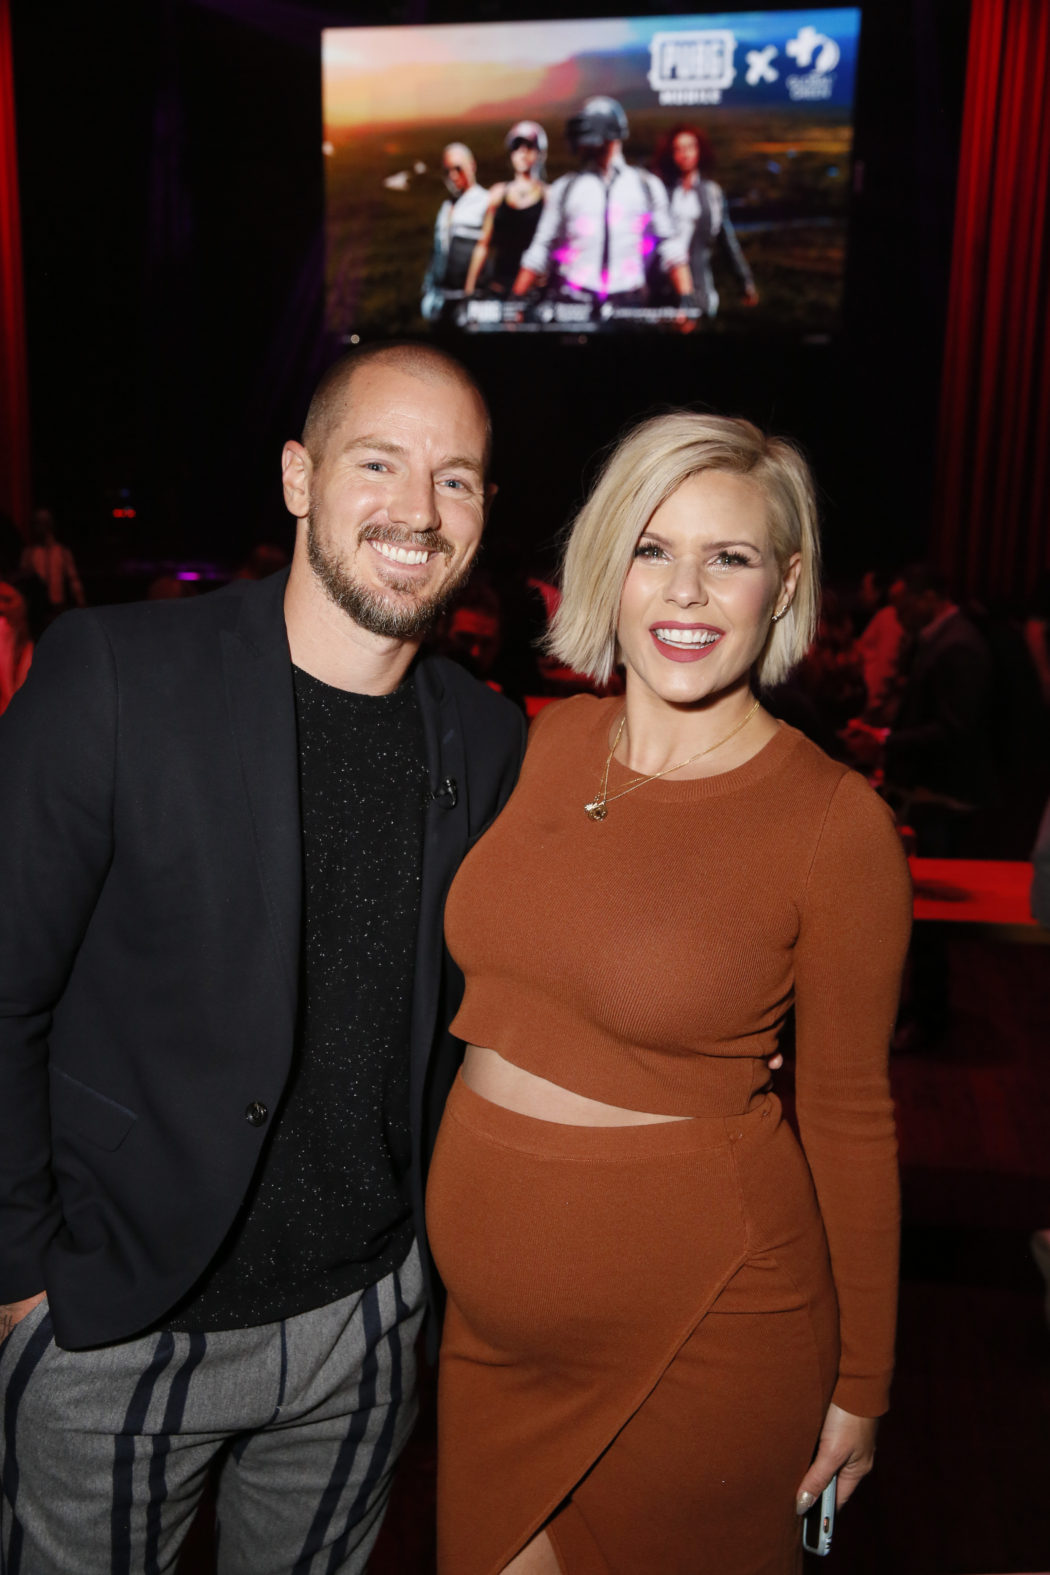 Jordan Harvey and Kimberly Caldwell Harvey support the PUBG MOBILE Fight4TheAmazon campaign Ryan Miller